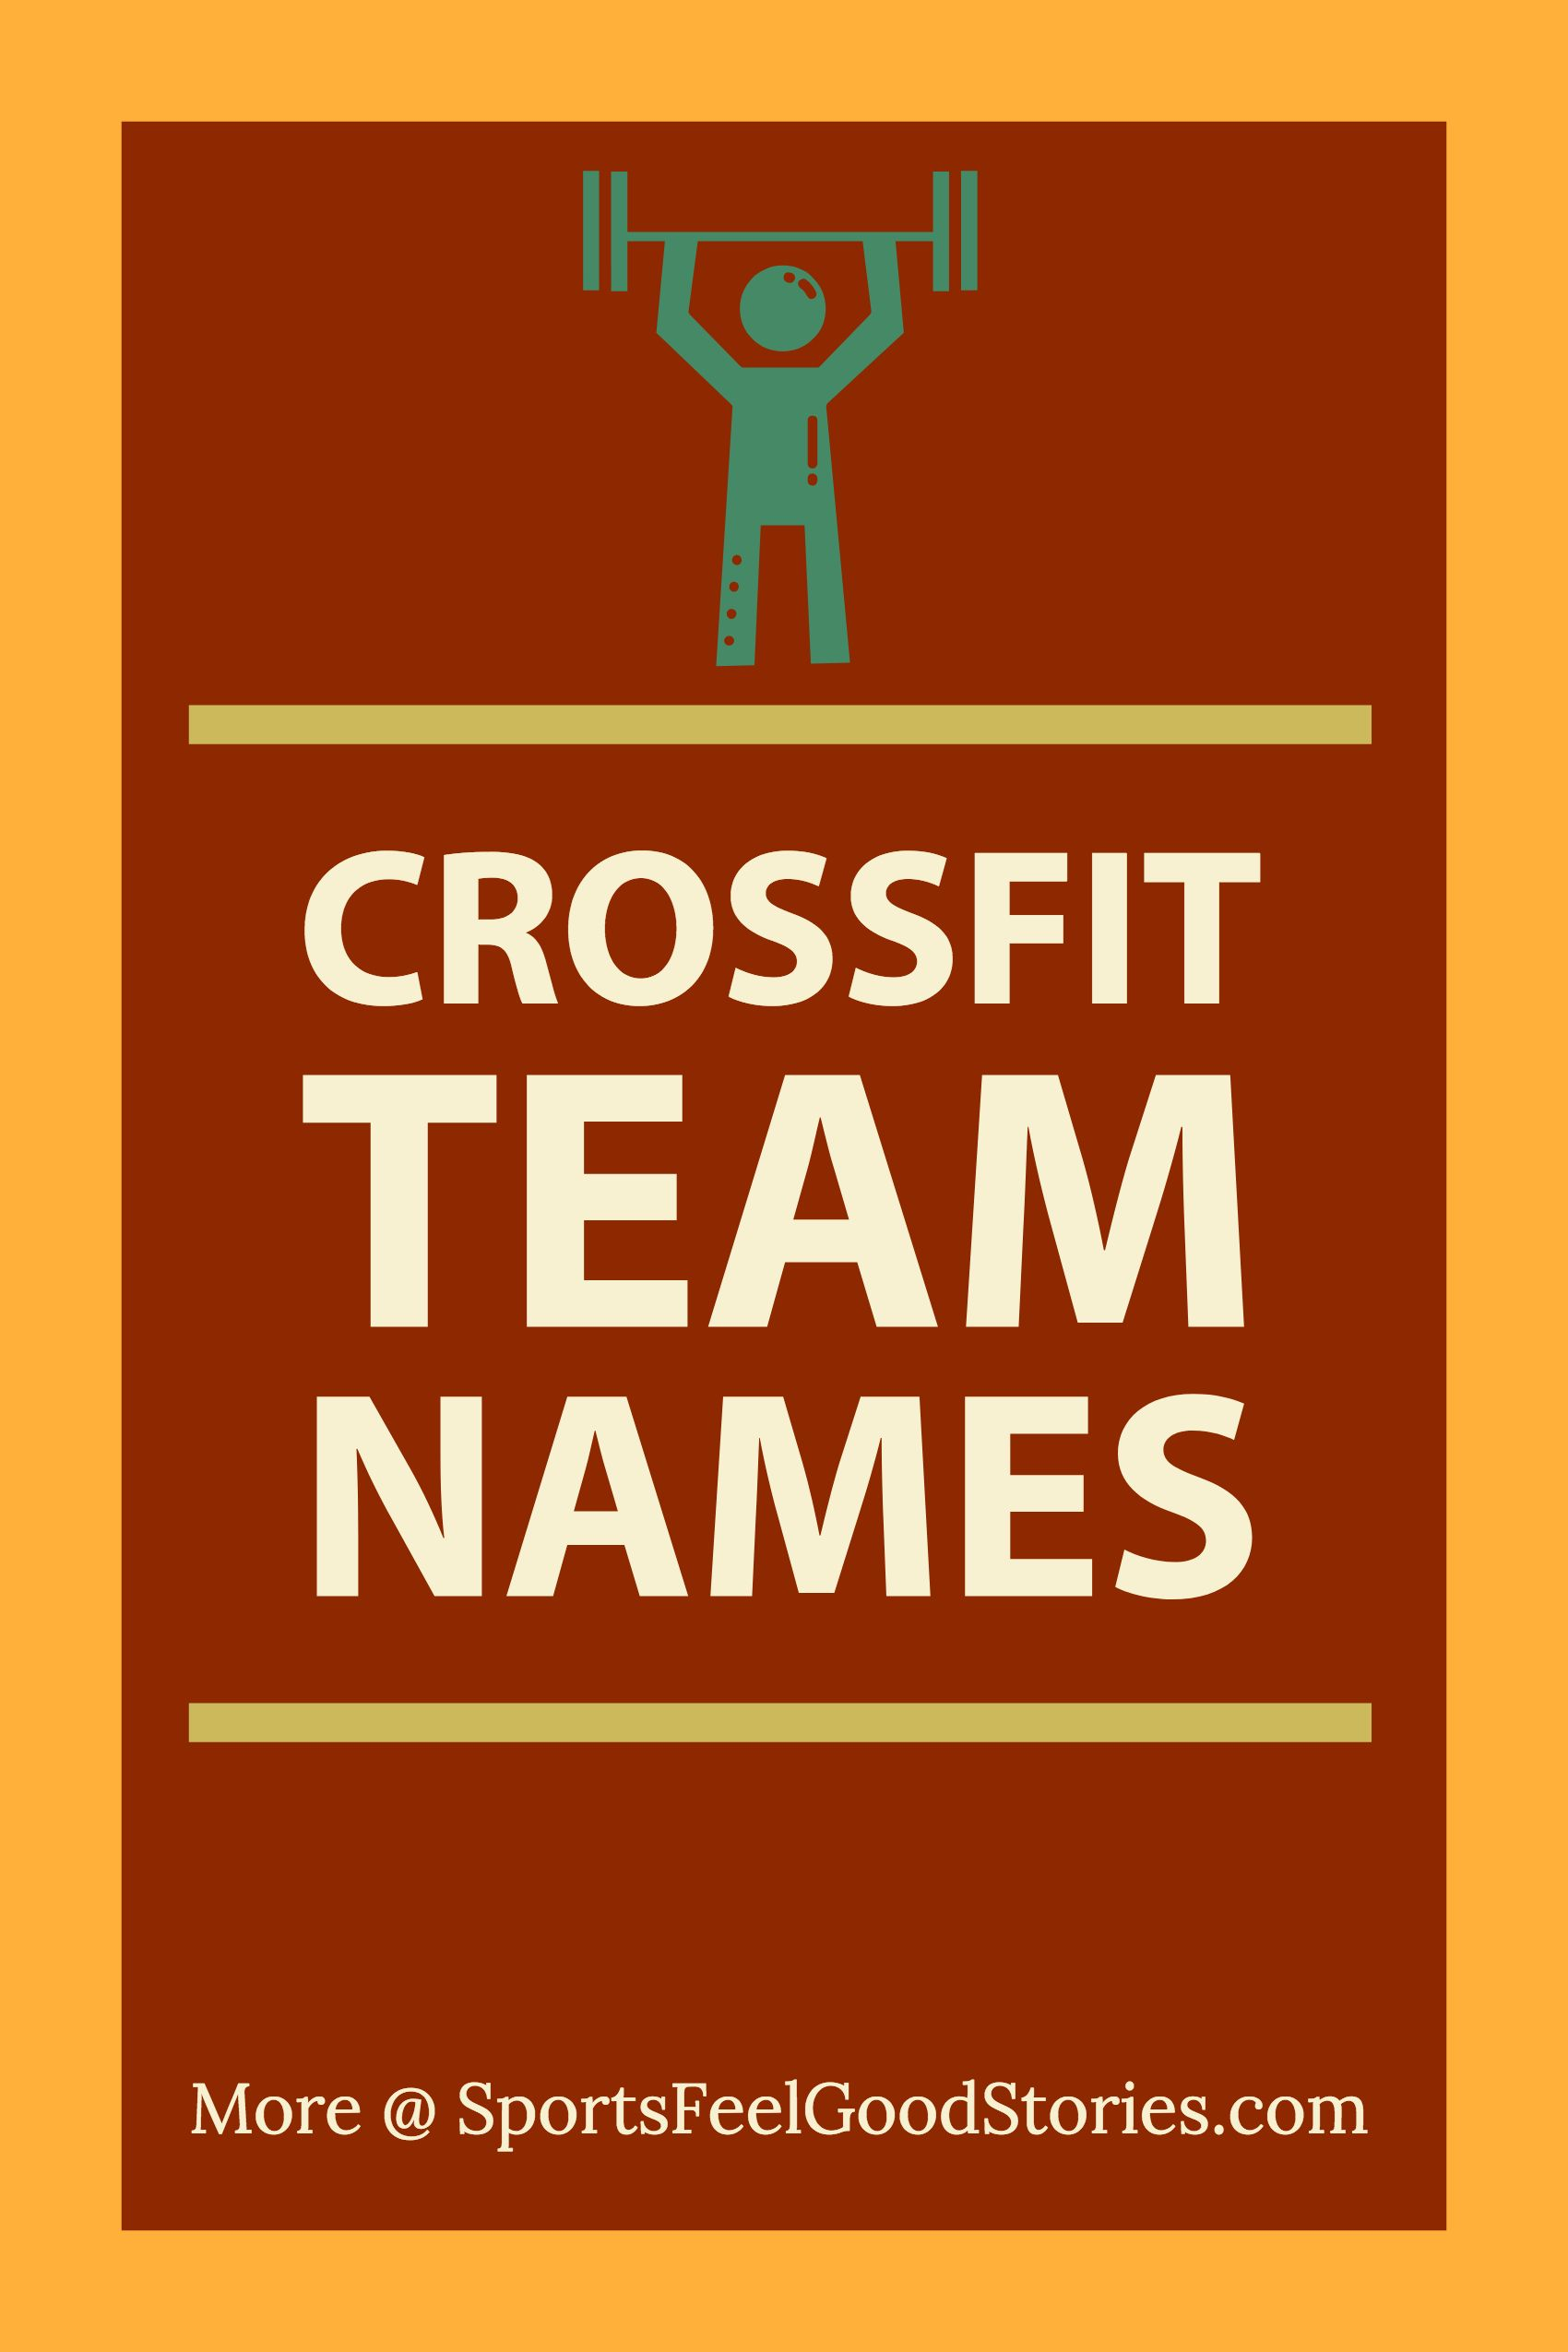 Best Crossfit Team Names Funny Cool And Creative Crossfit Team Names Crossfit Team Names Funny Team Names